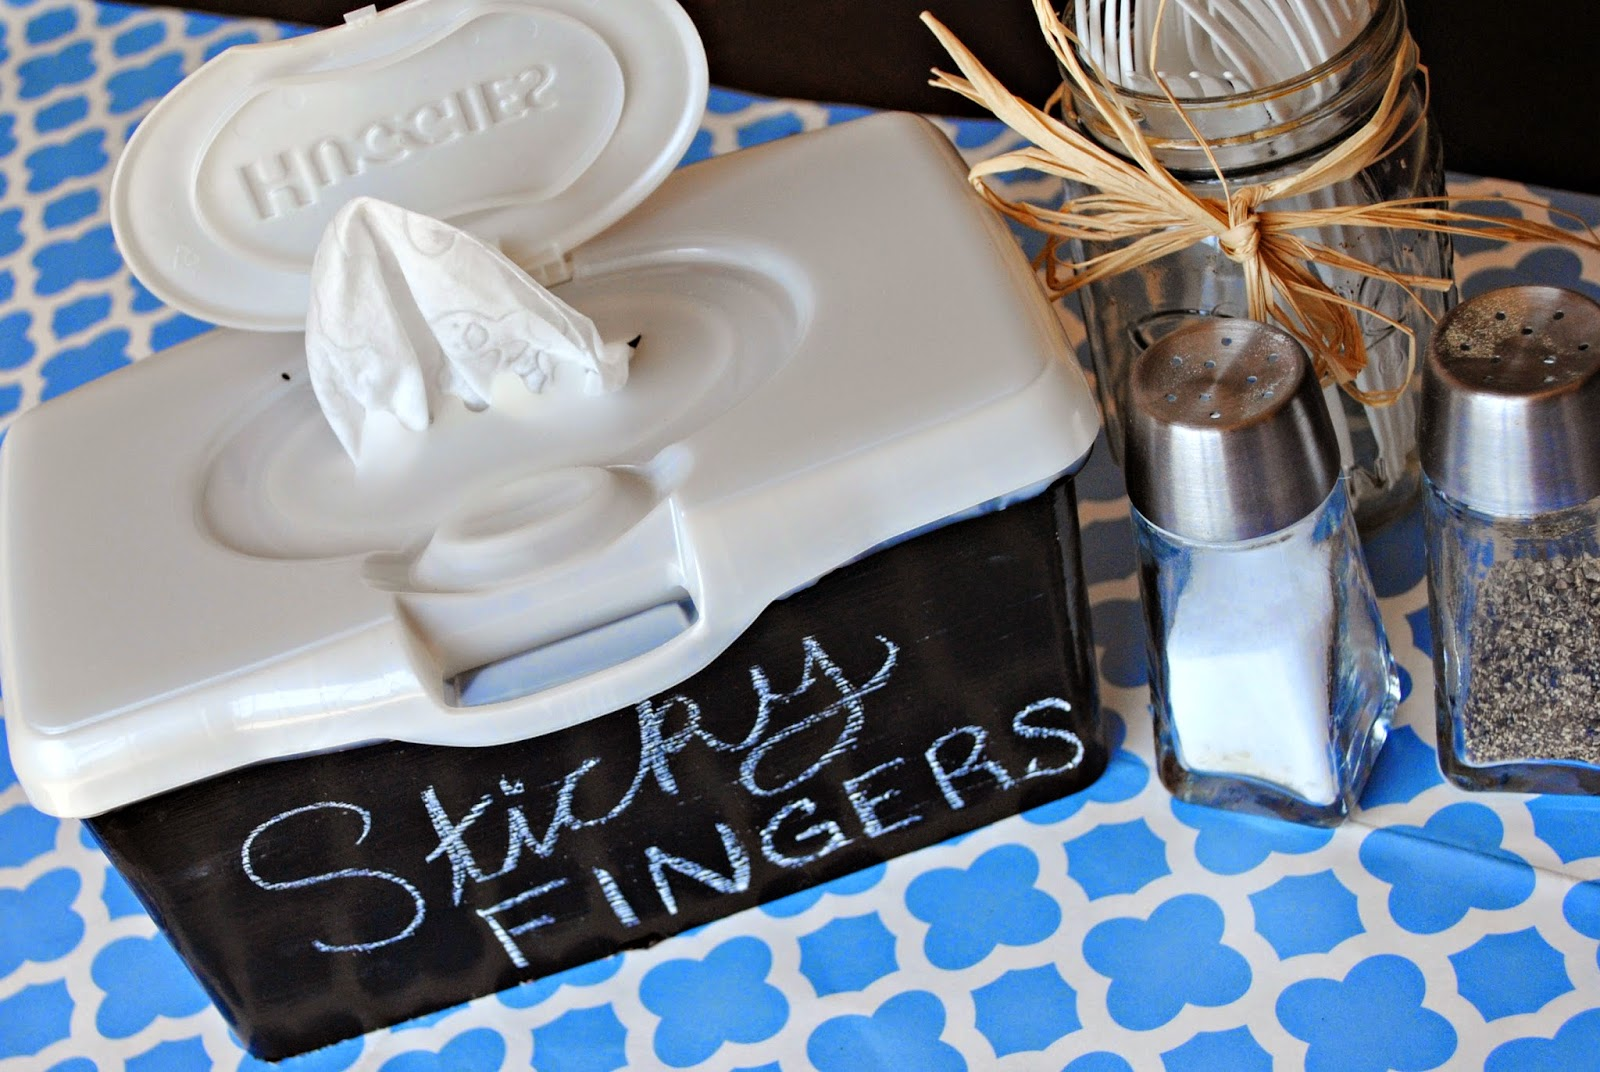 Sticky Fingers Table Wipes